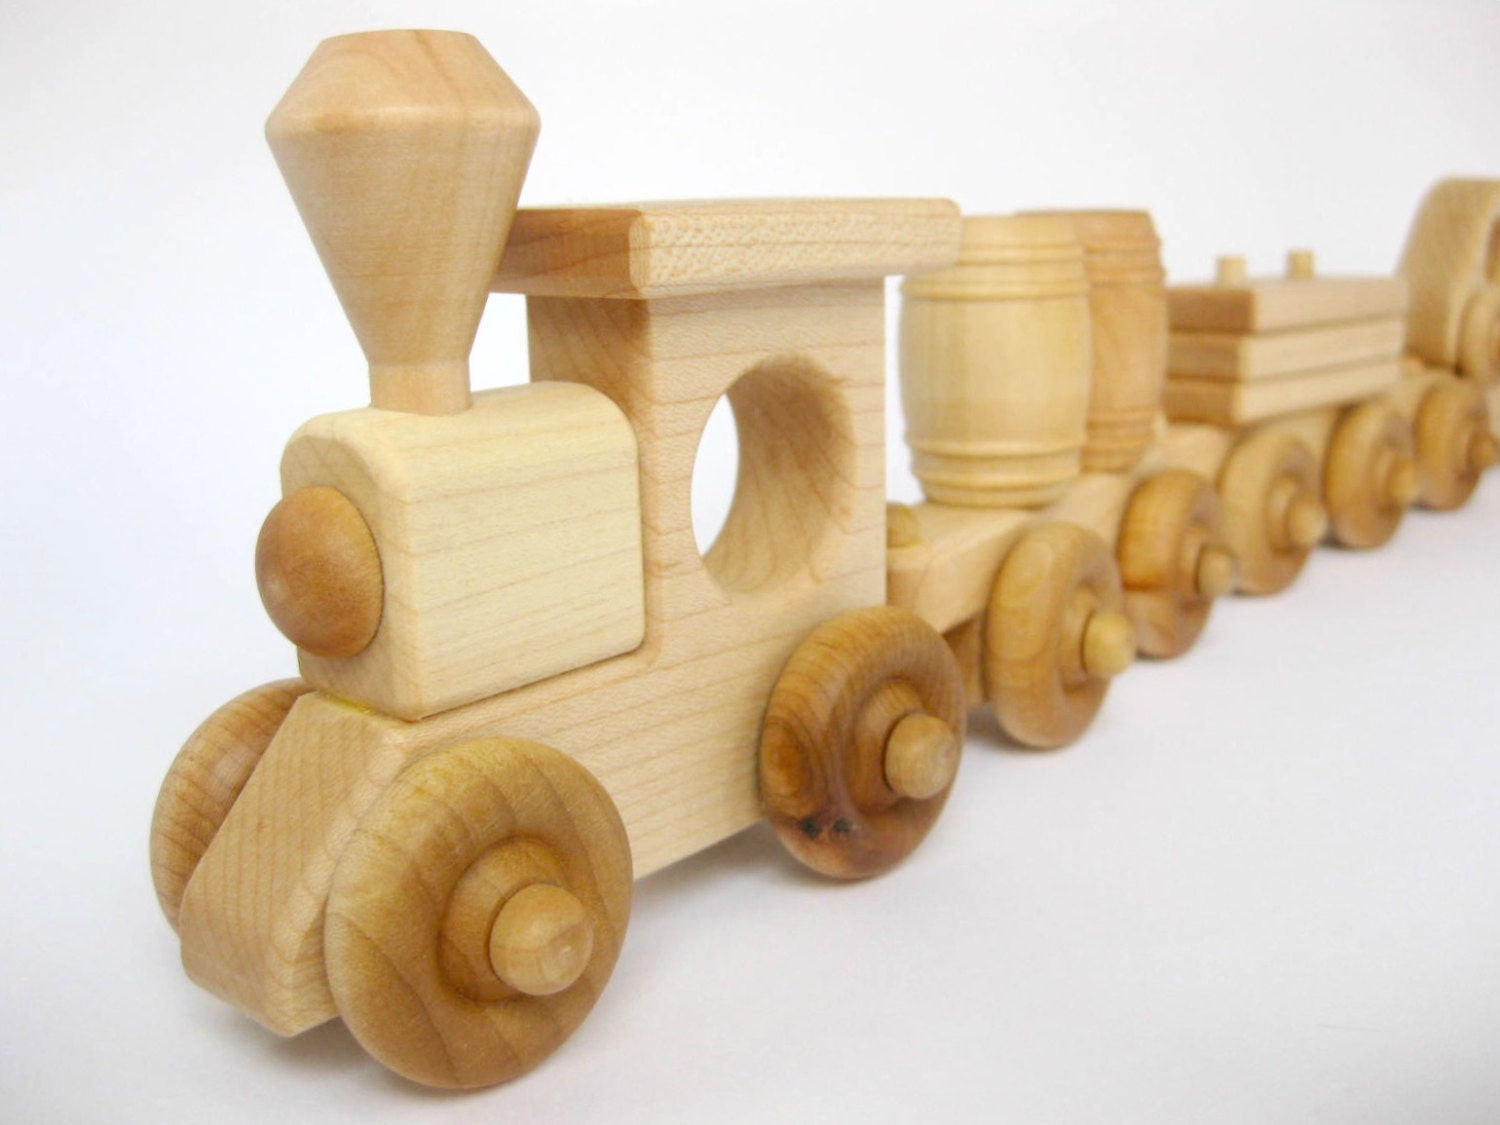 Wooden Toy Trains 11